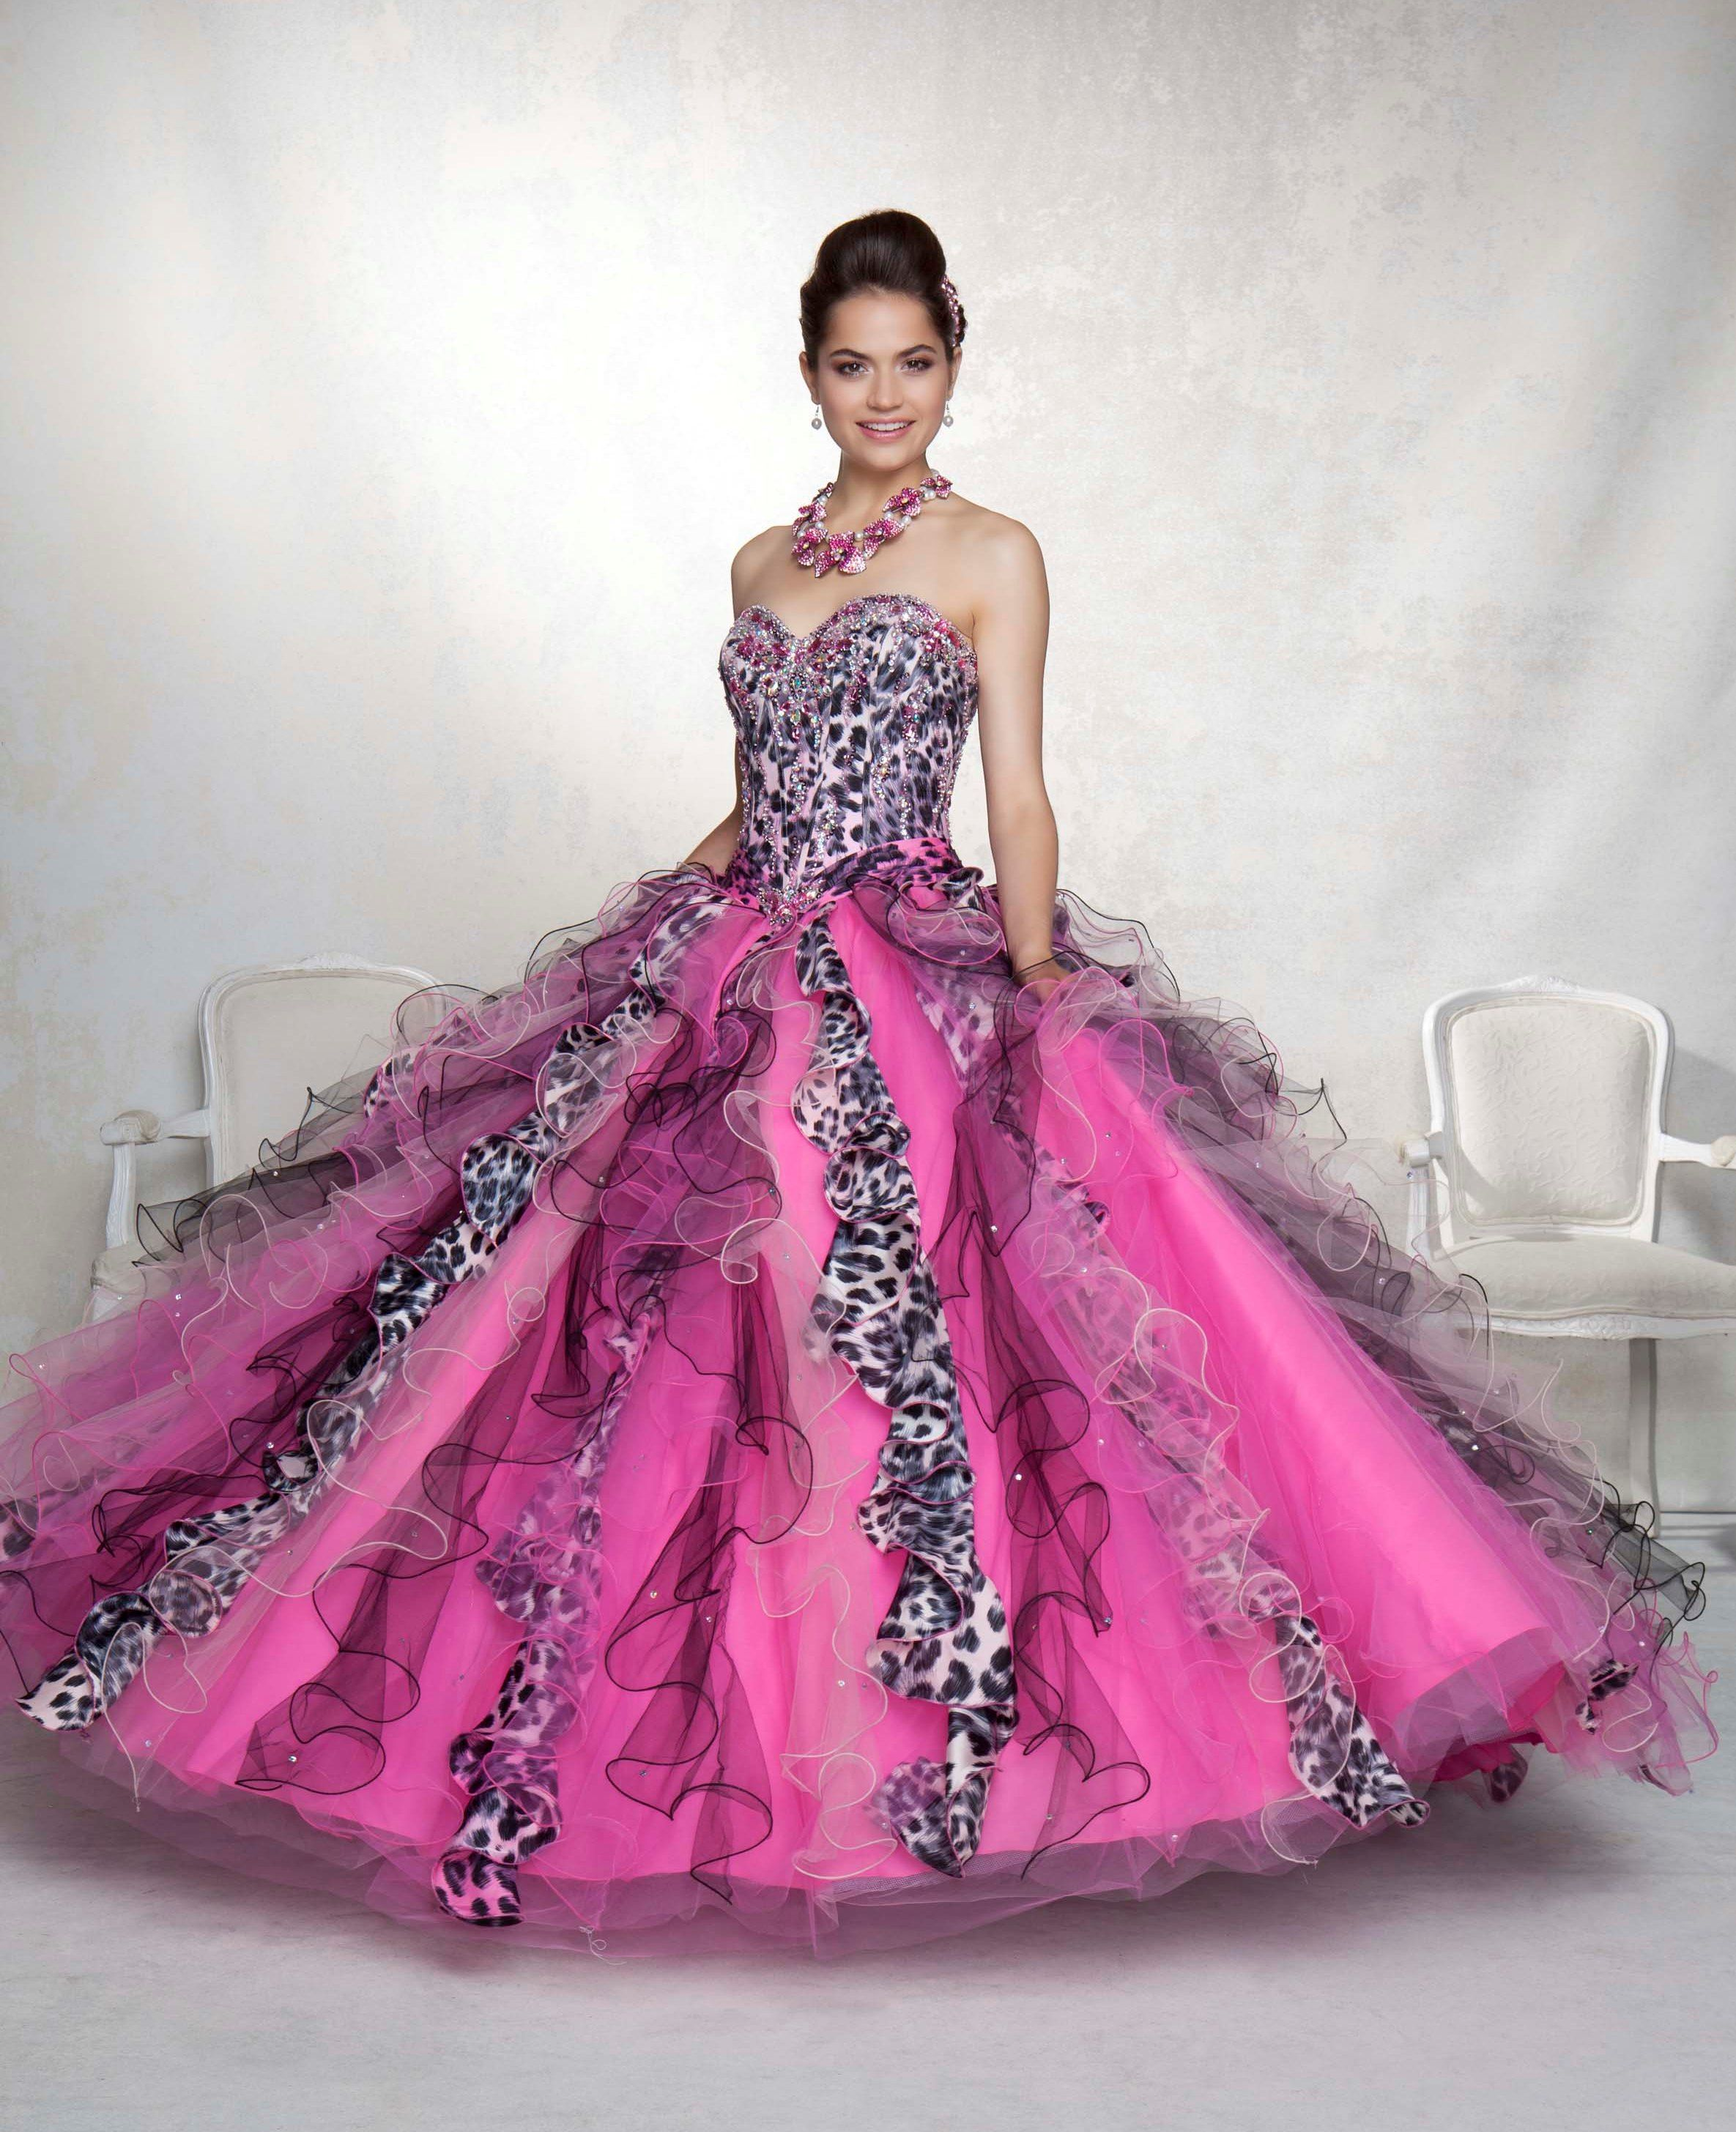 unique outfits for women | Quinceanera dresses and gowns from the ...